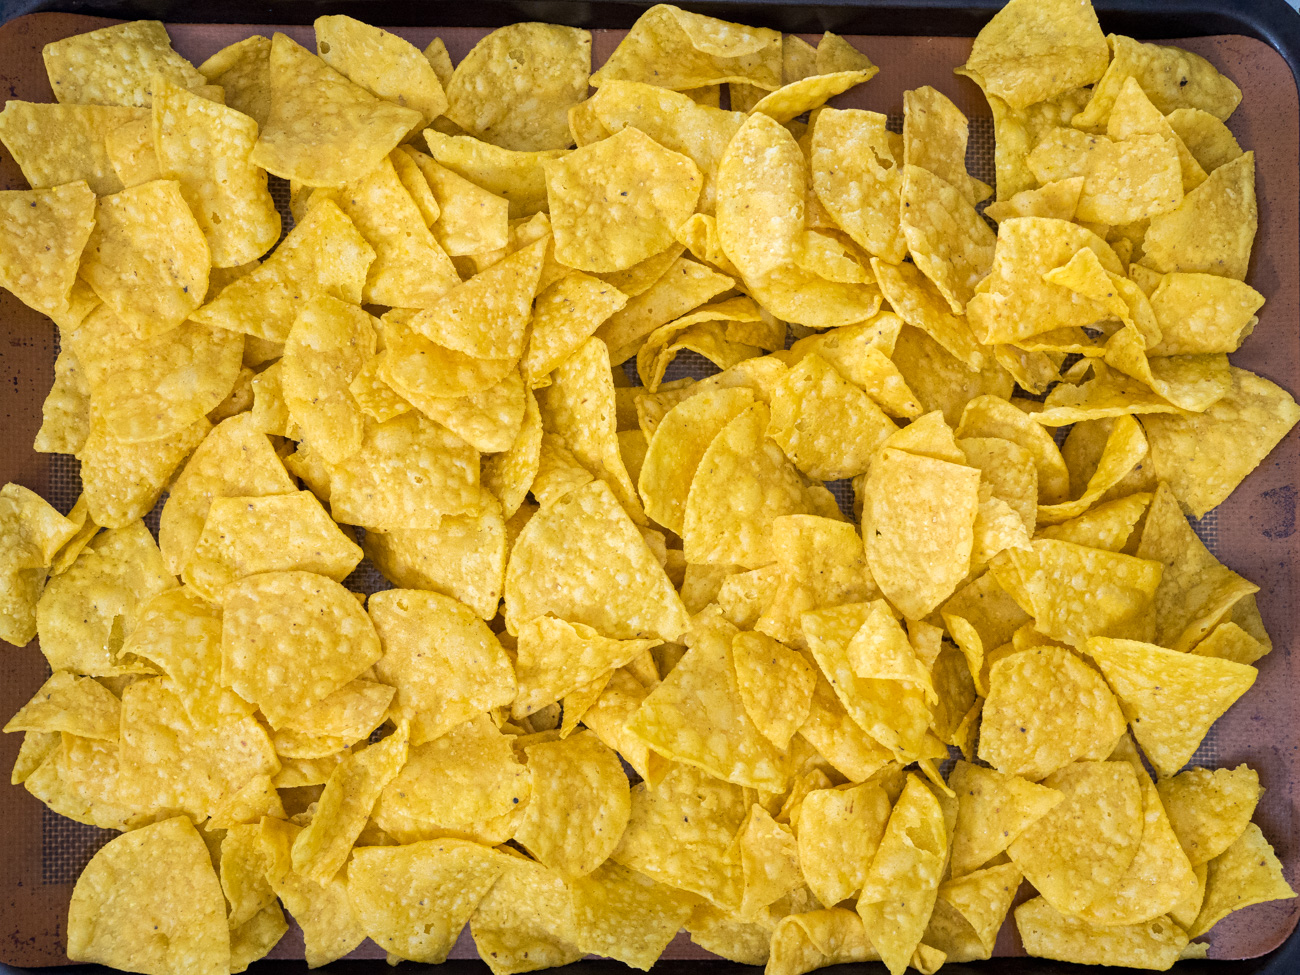 Spread out tortilla chips in a single layer on the prepared baking sheet.